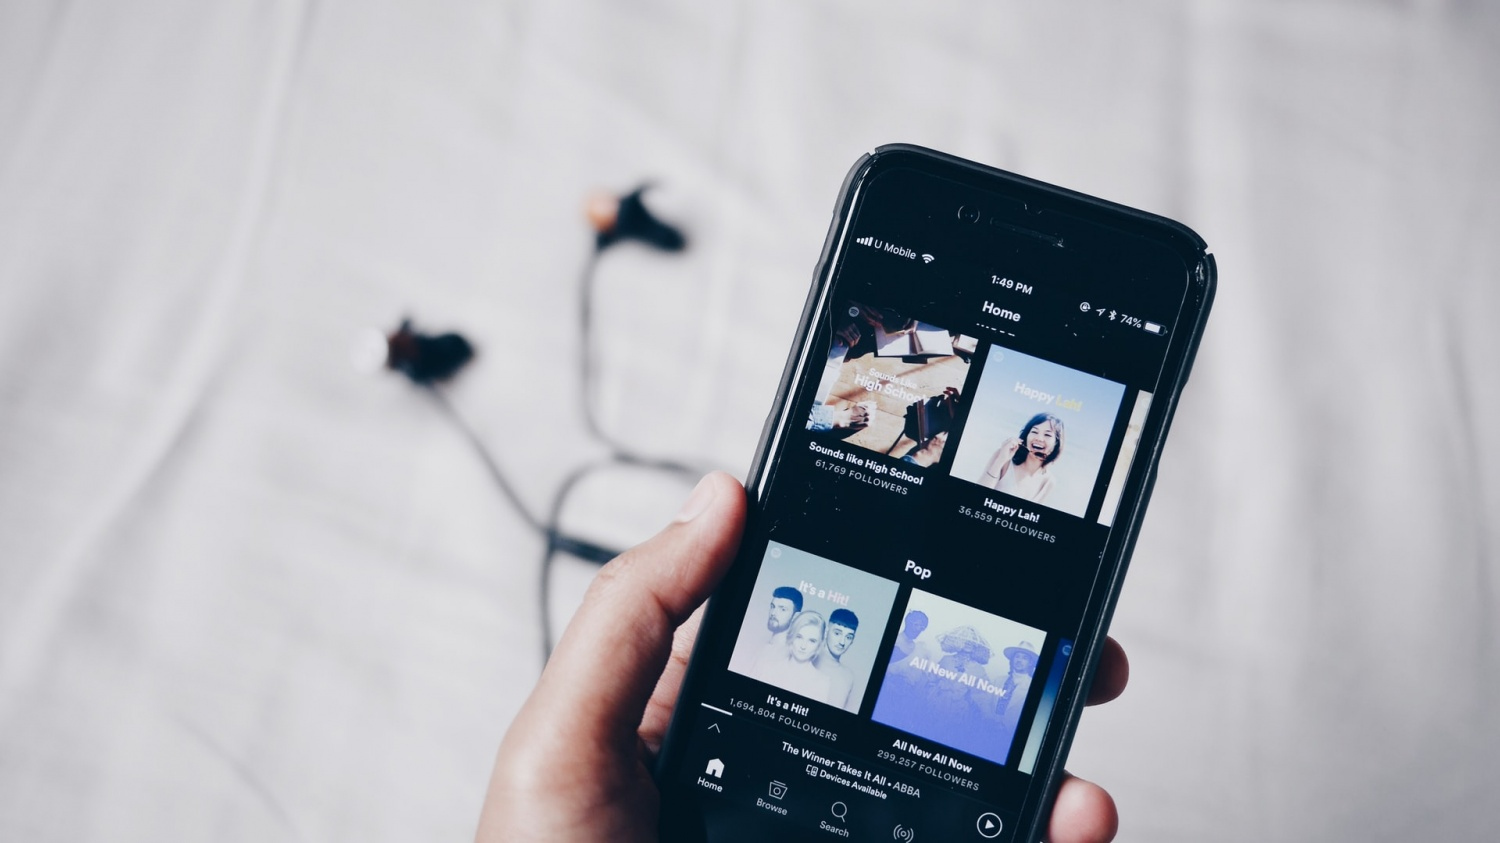 'Hey Spotify' Rolling Out in Apple: 3 Steps to Enable Voice-Command Feature on Your iPhone